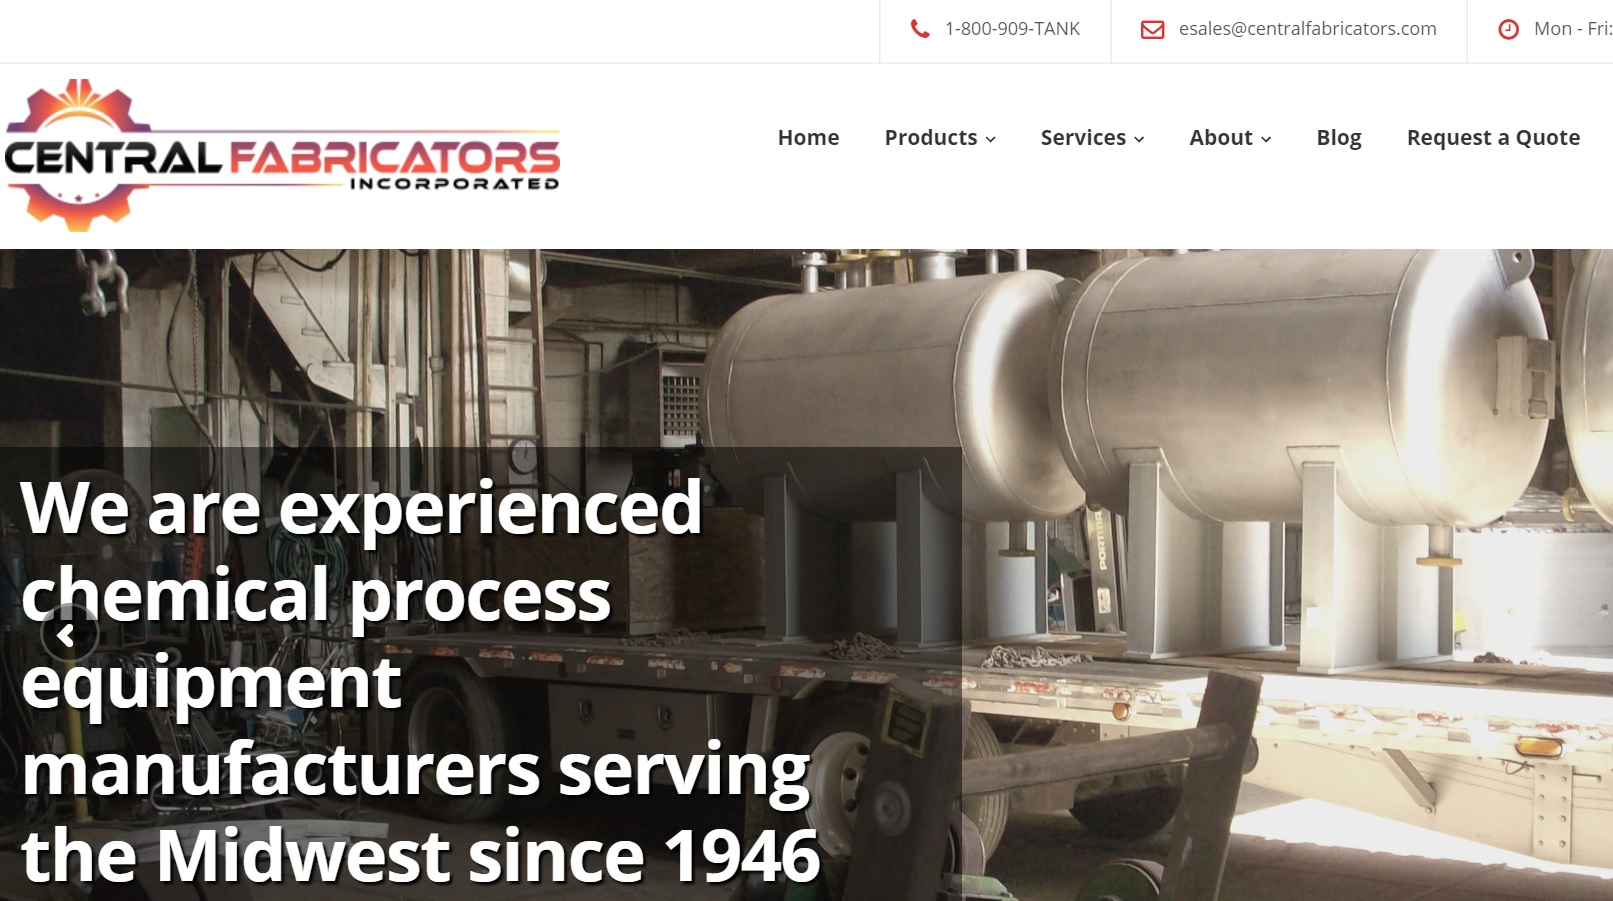 Central Fabricators, Inc.